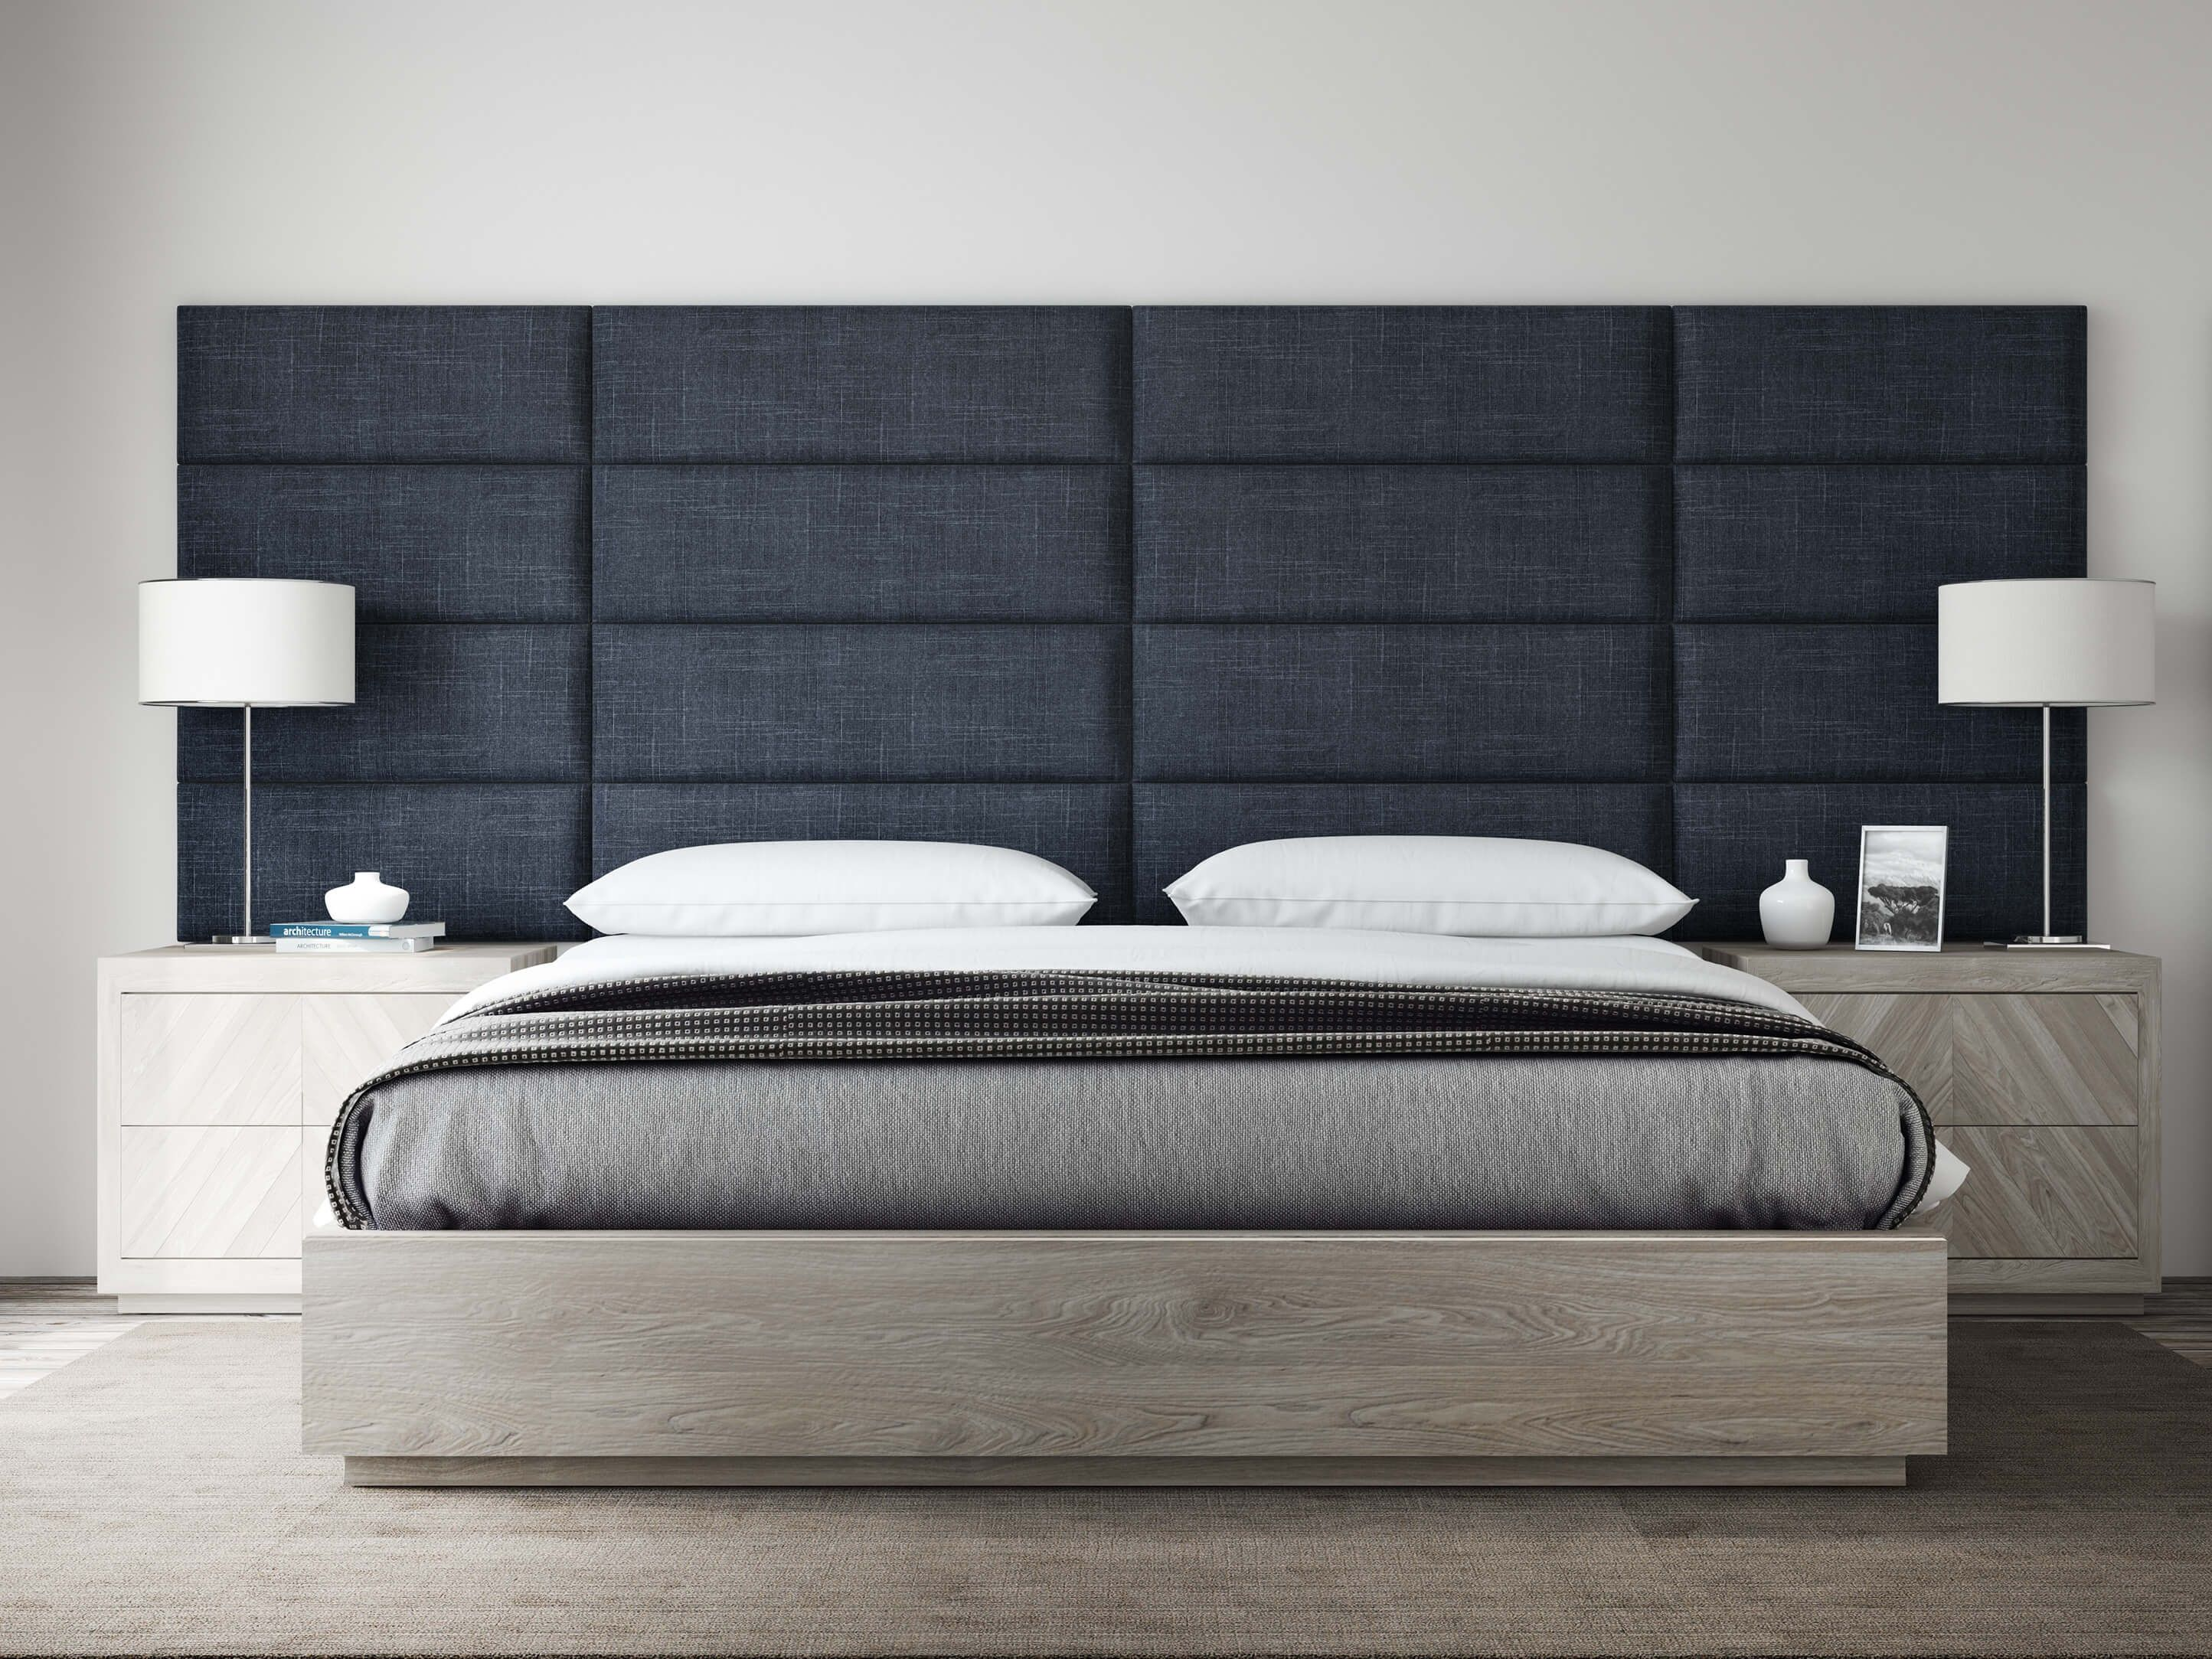 Pin By Penny Teo On Nc Master Bedroom Bed Headboard Design Bed Furniture Bedroom Furniture Design